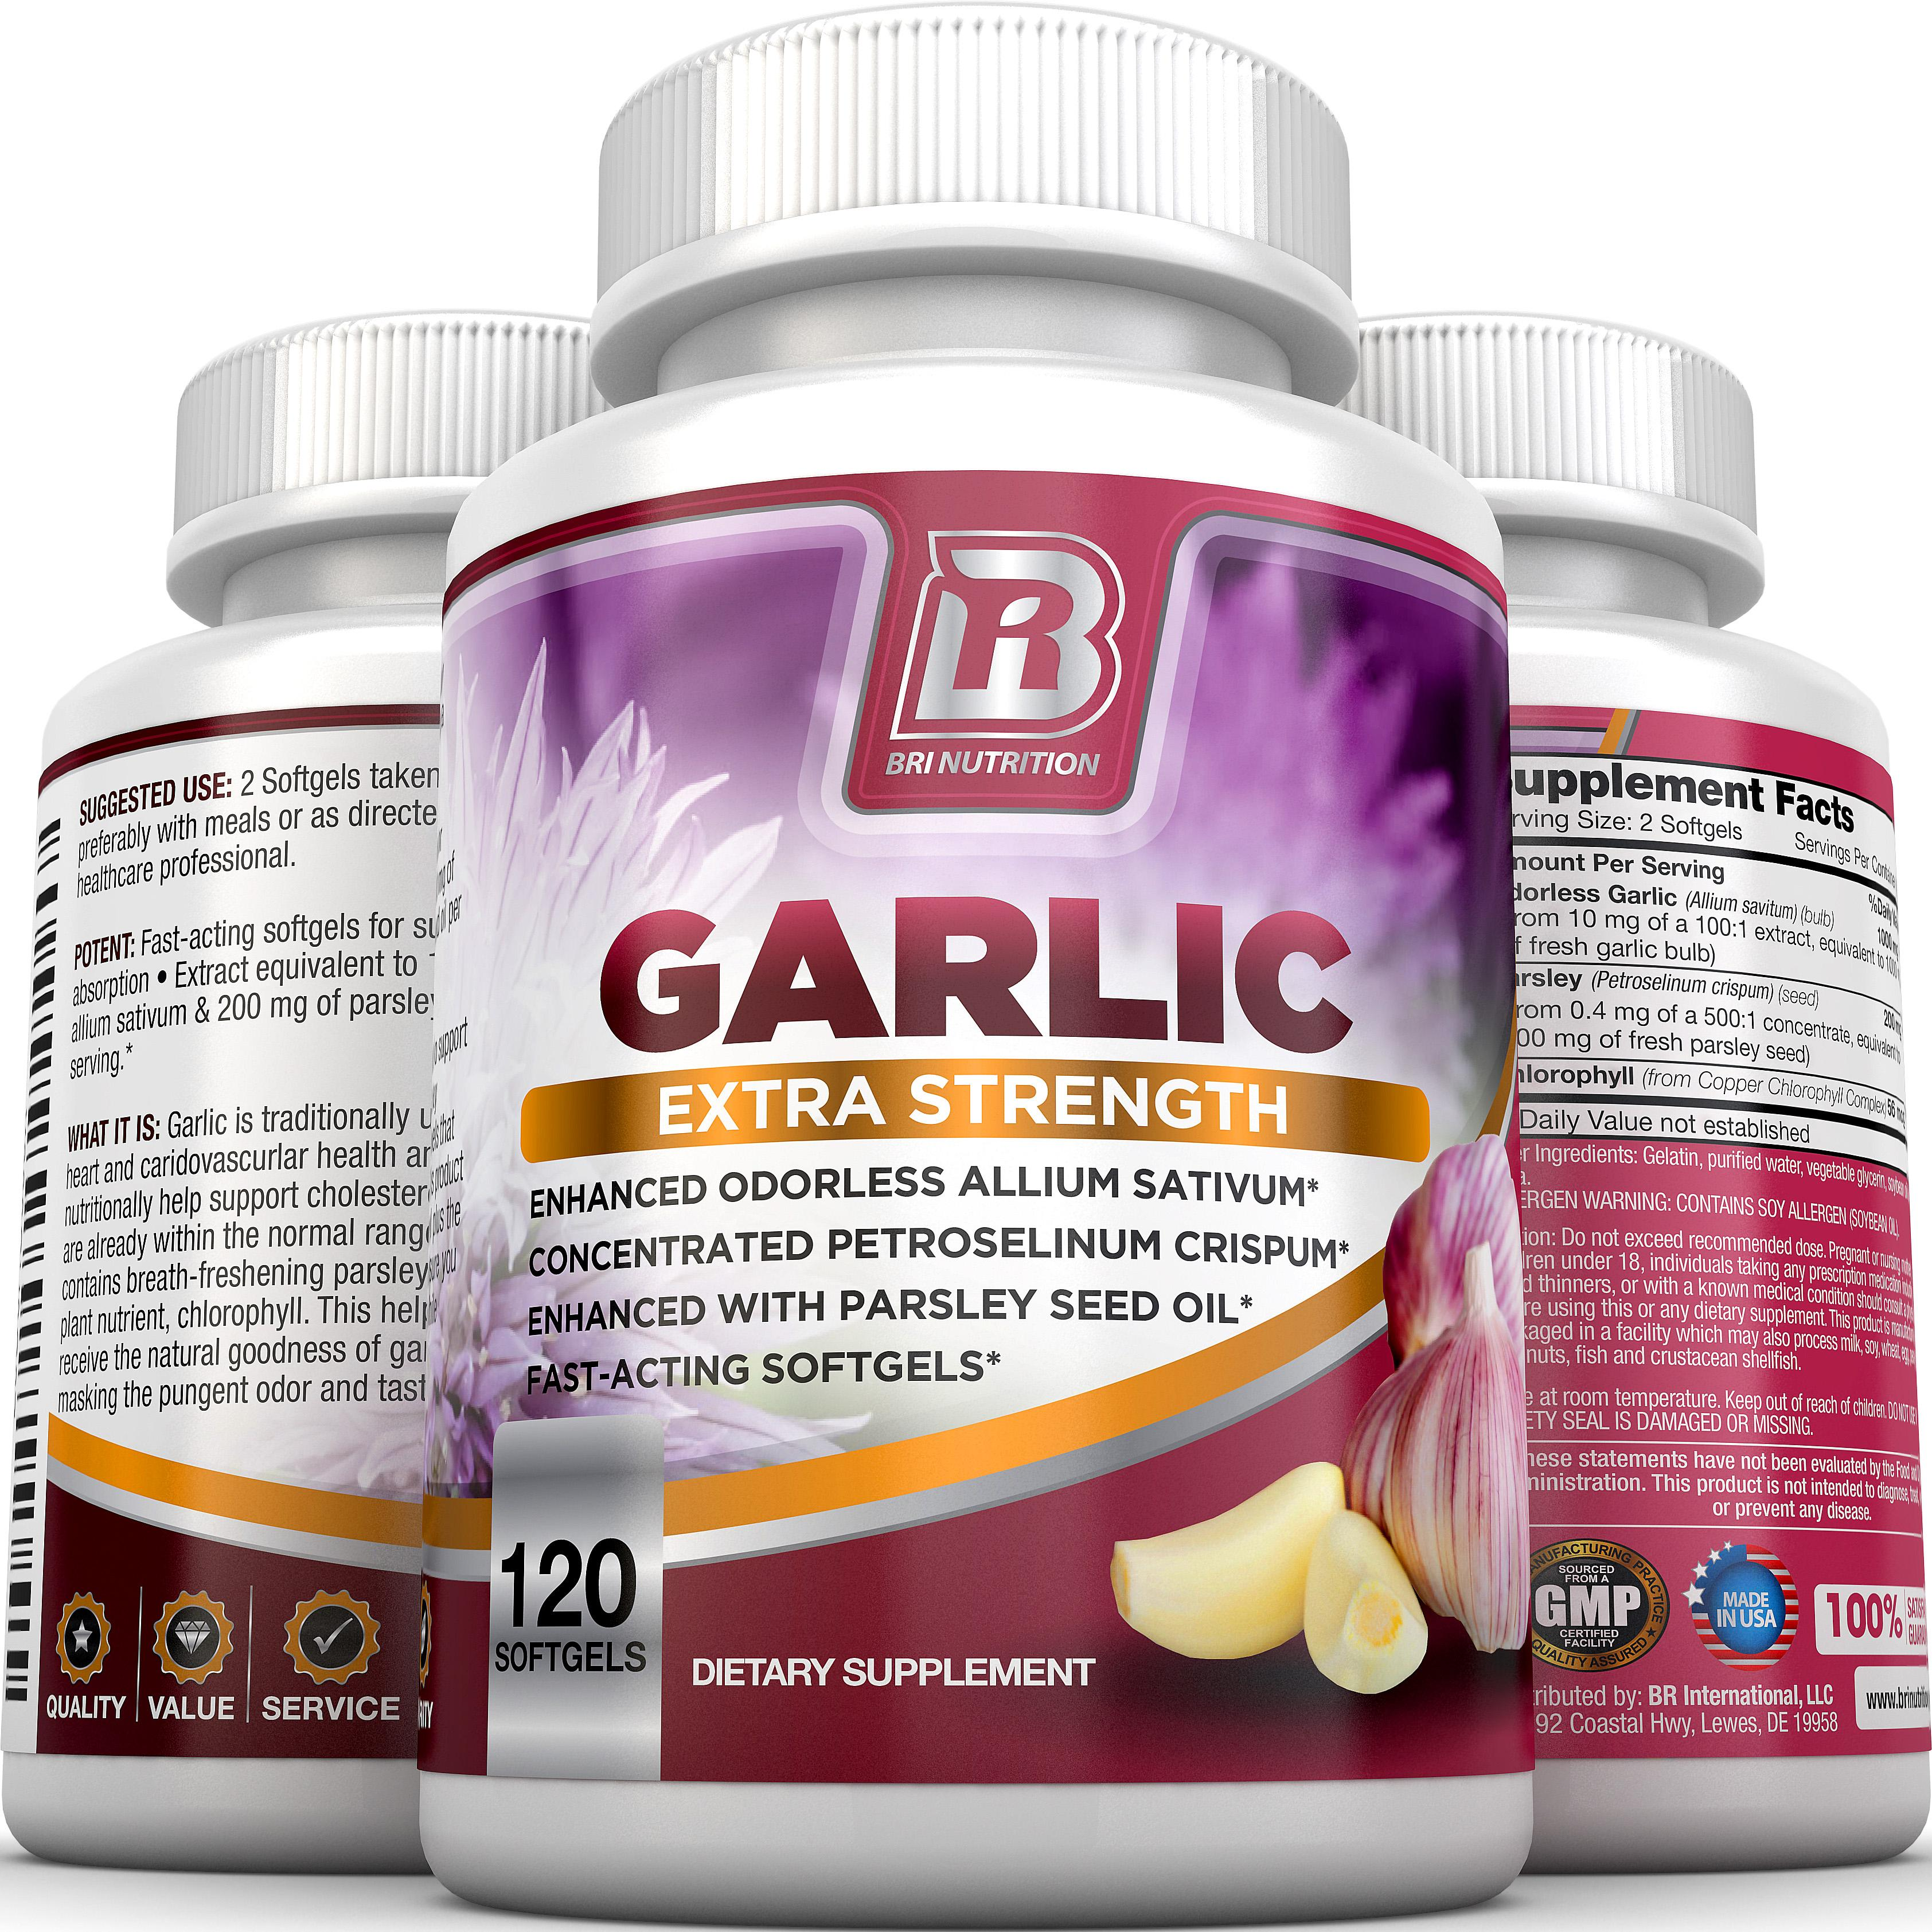 What is garlic vitamins good for